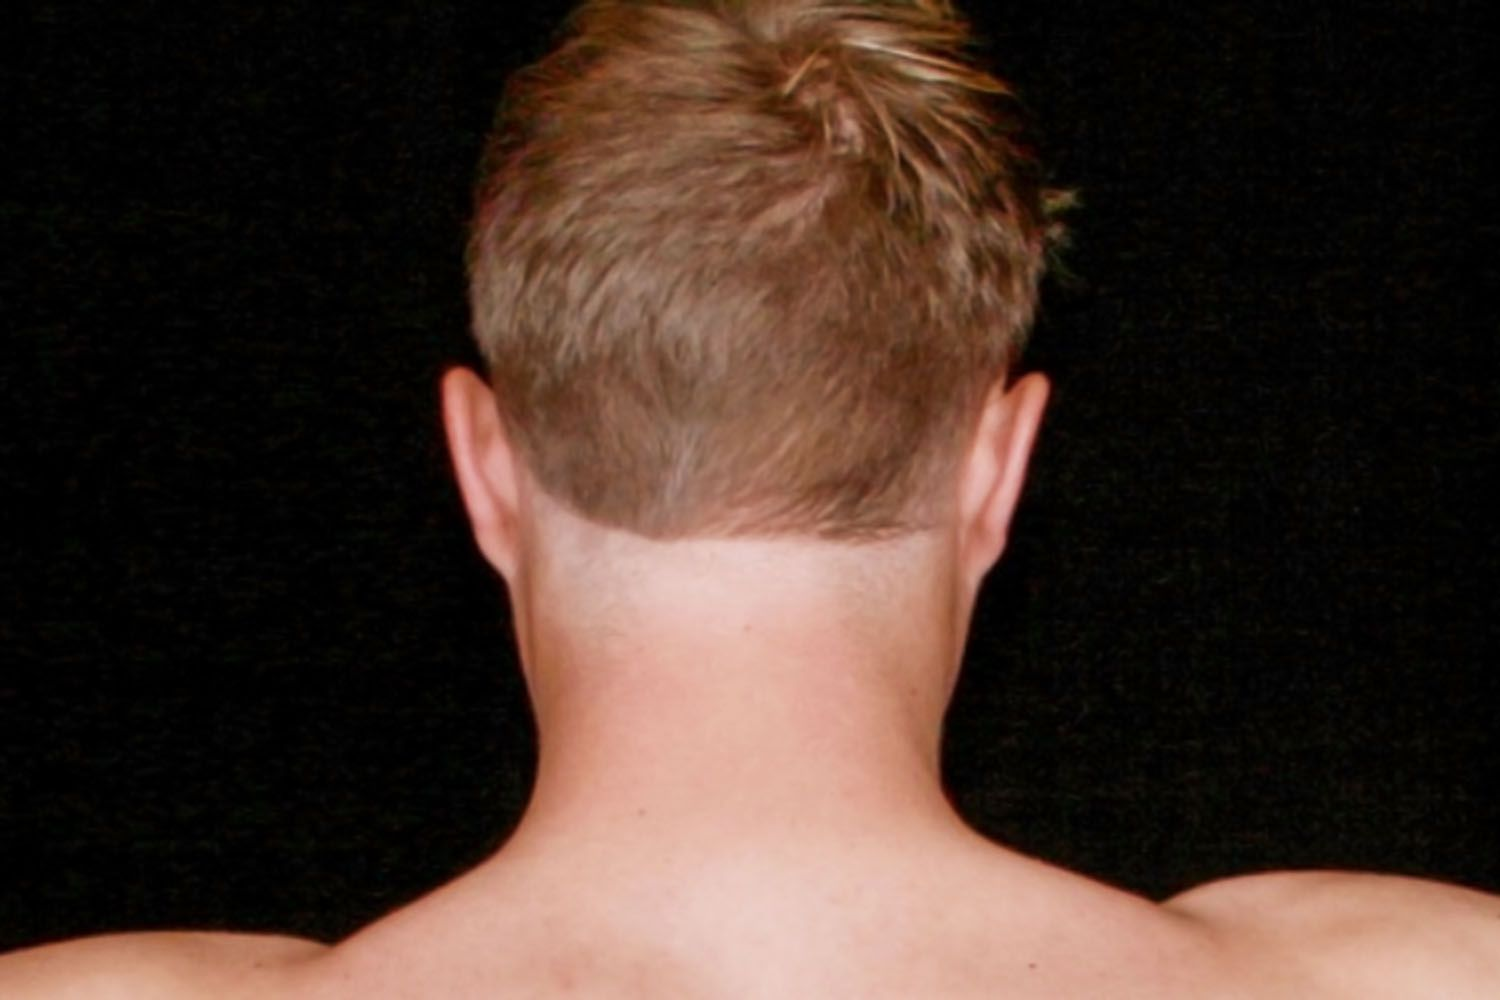 Man with hair shaved too high on neck